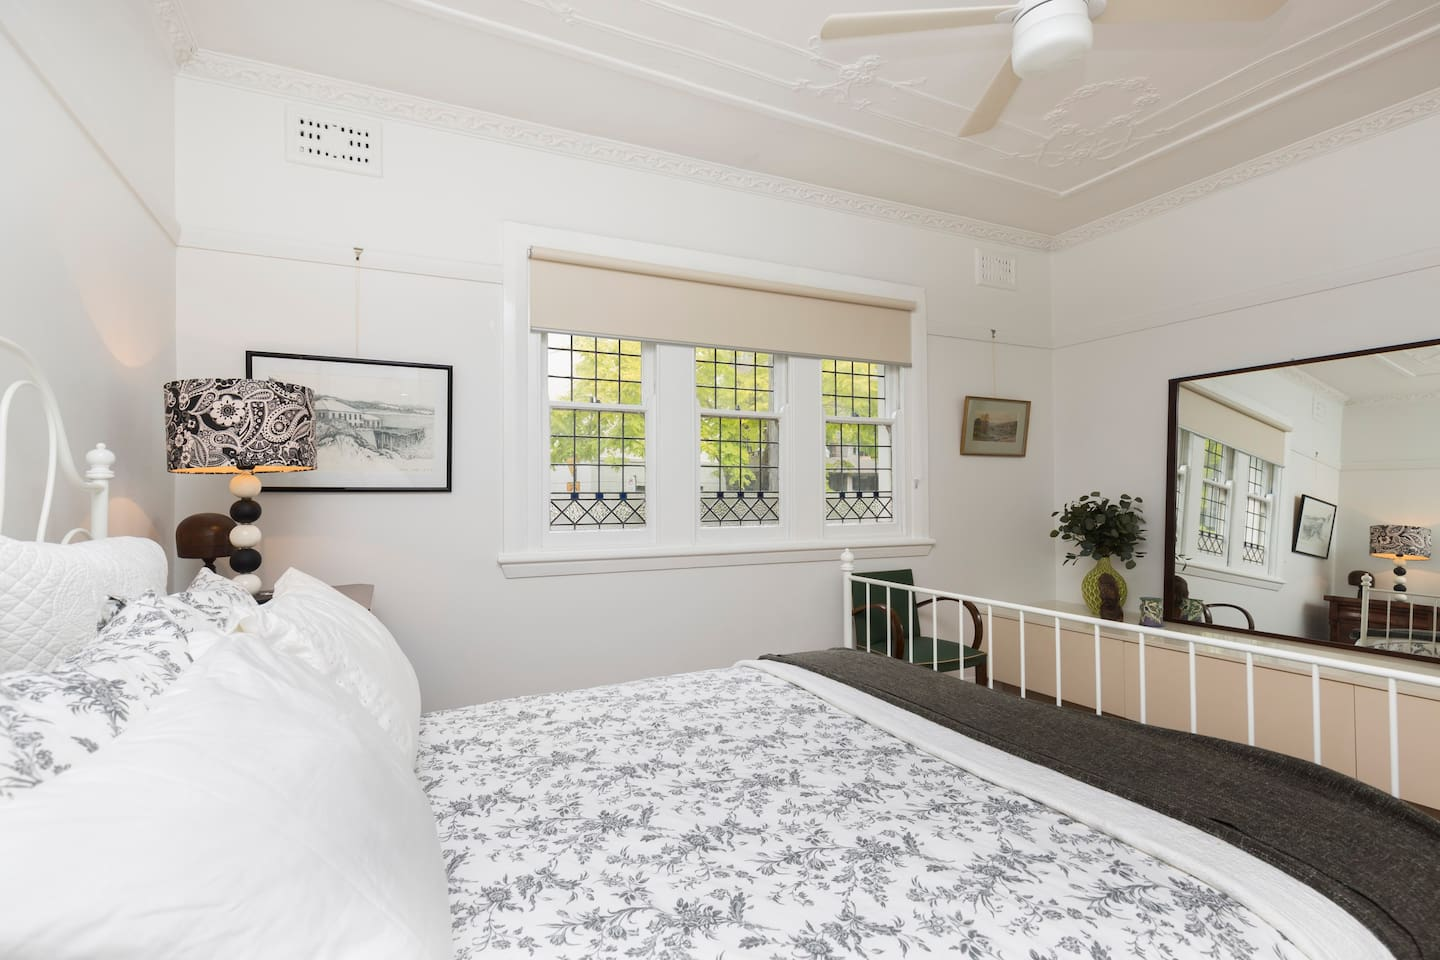 Ceiling fans in both bedrooms which keeps apartment lovely and cool